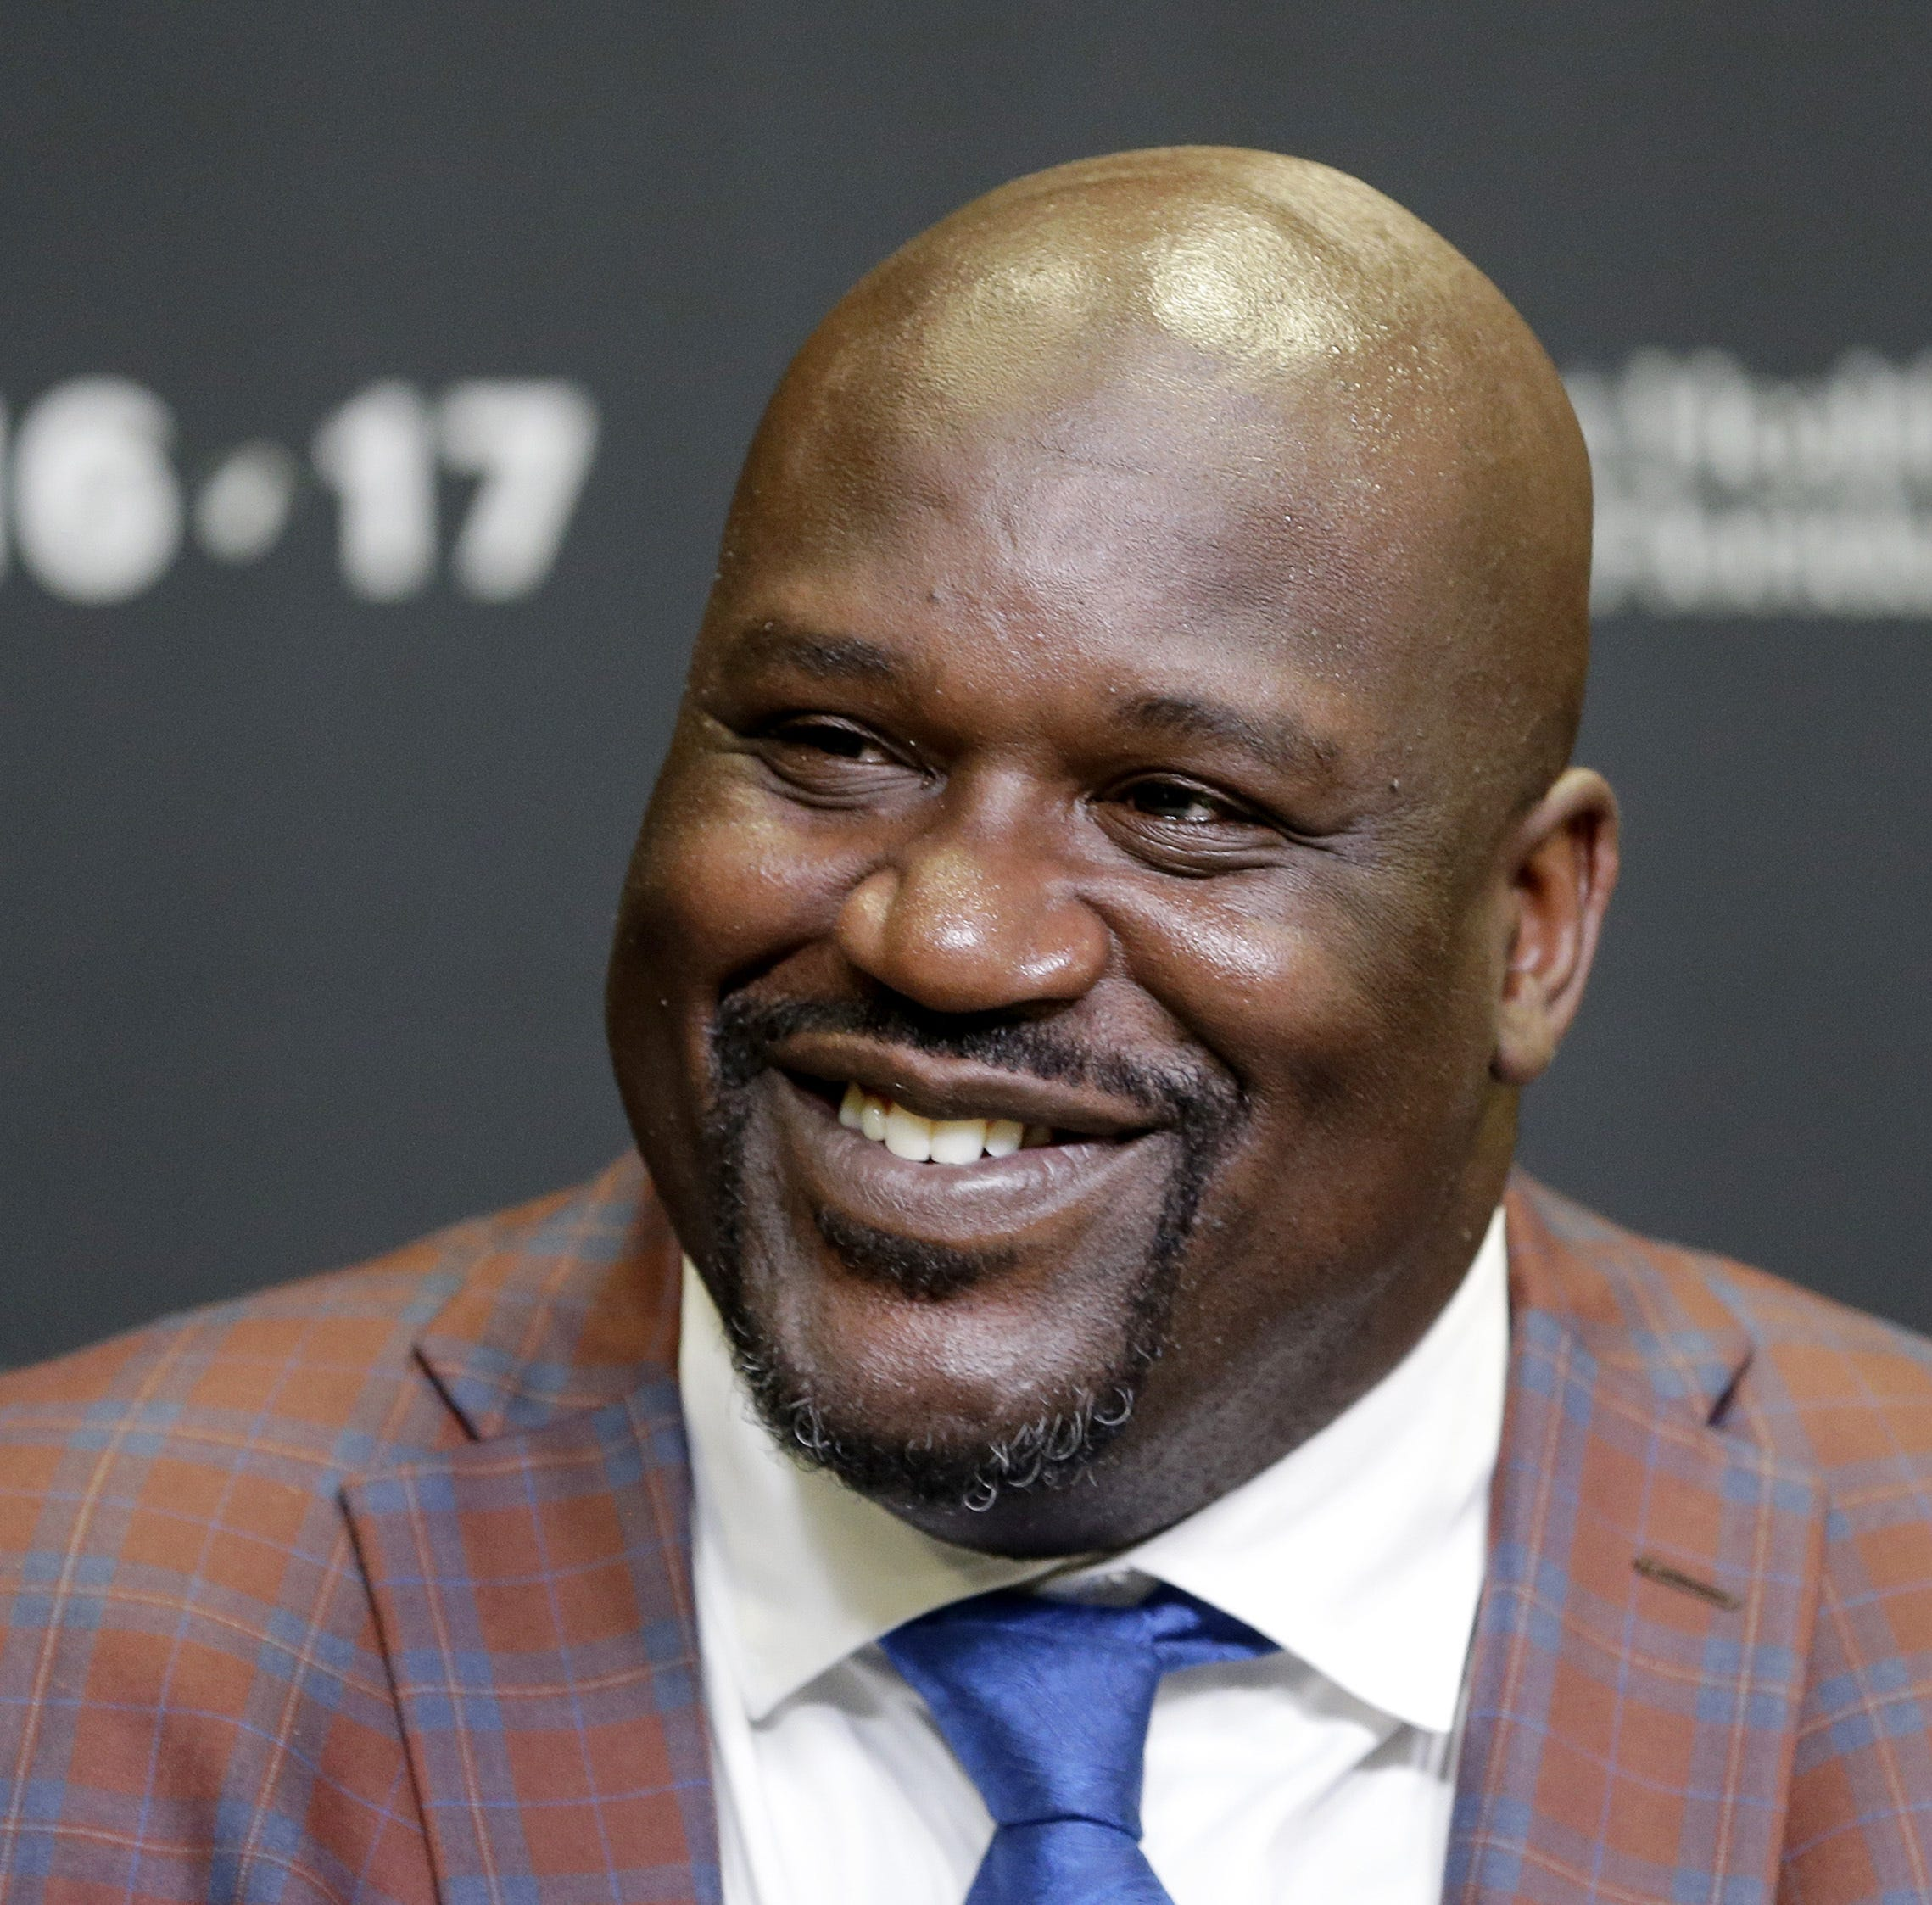 Shaquille O'Neal will be the new face of Papa John's Pizza